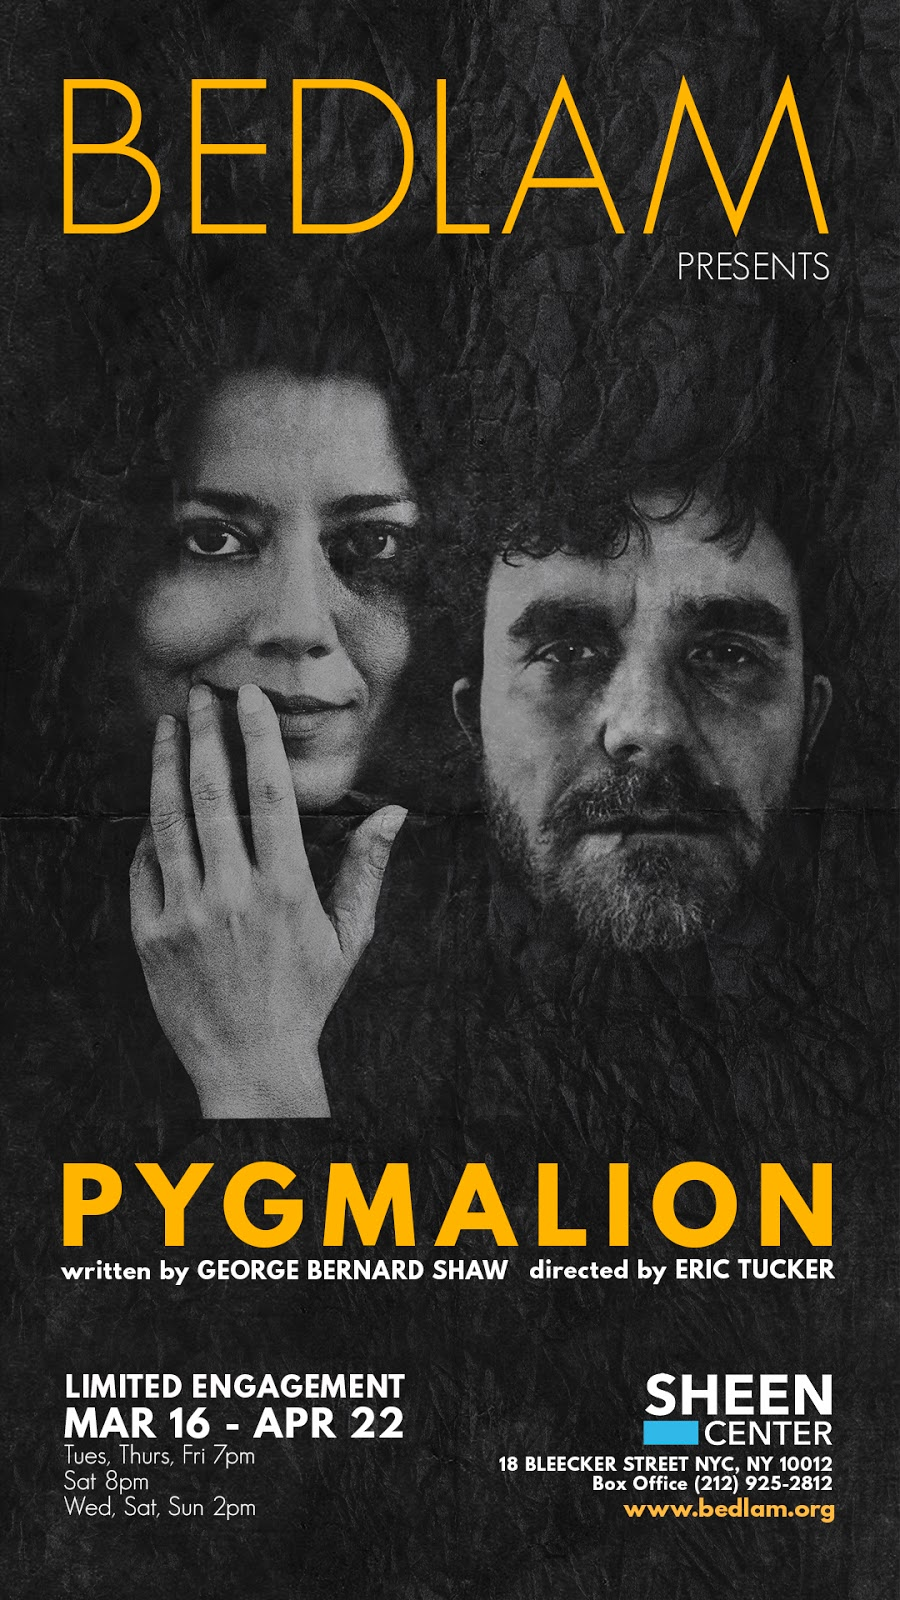 THEATRE'S LEITER SIDE: 200 (2017-2018): Review: PYGMALION (seen